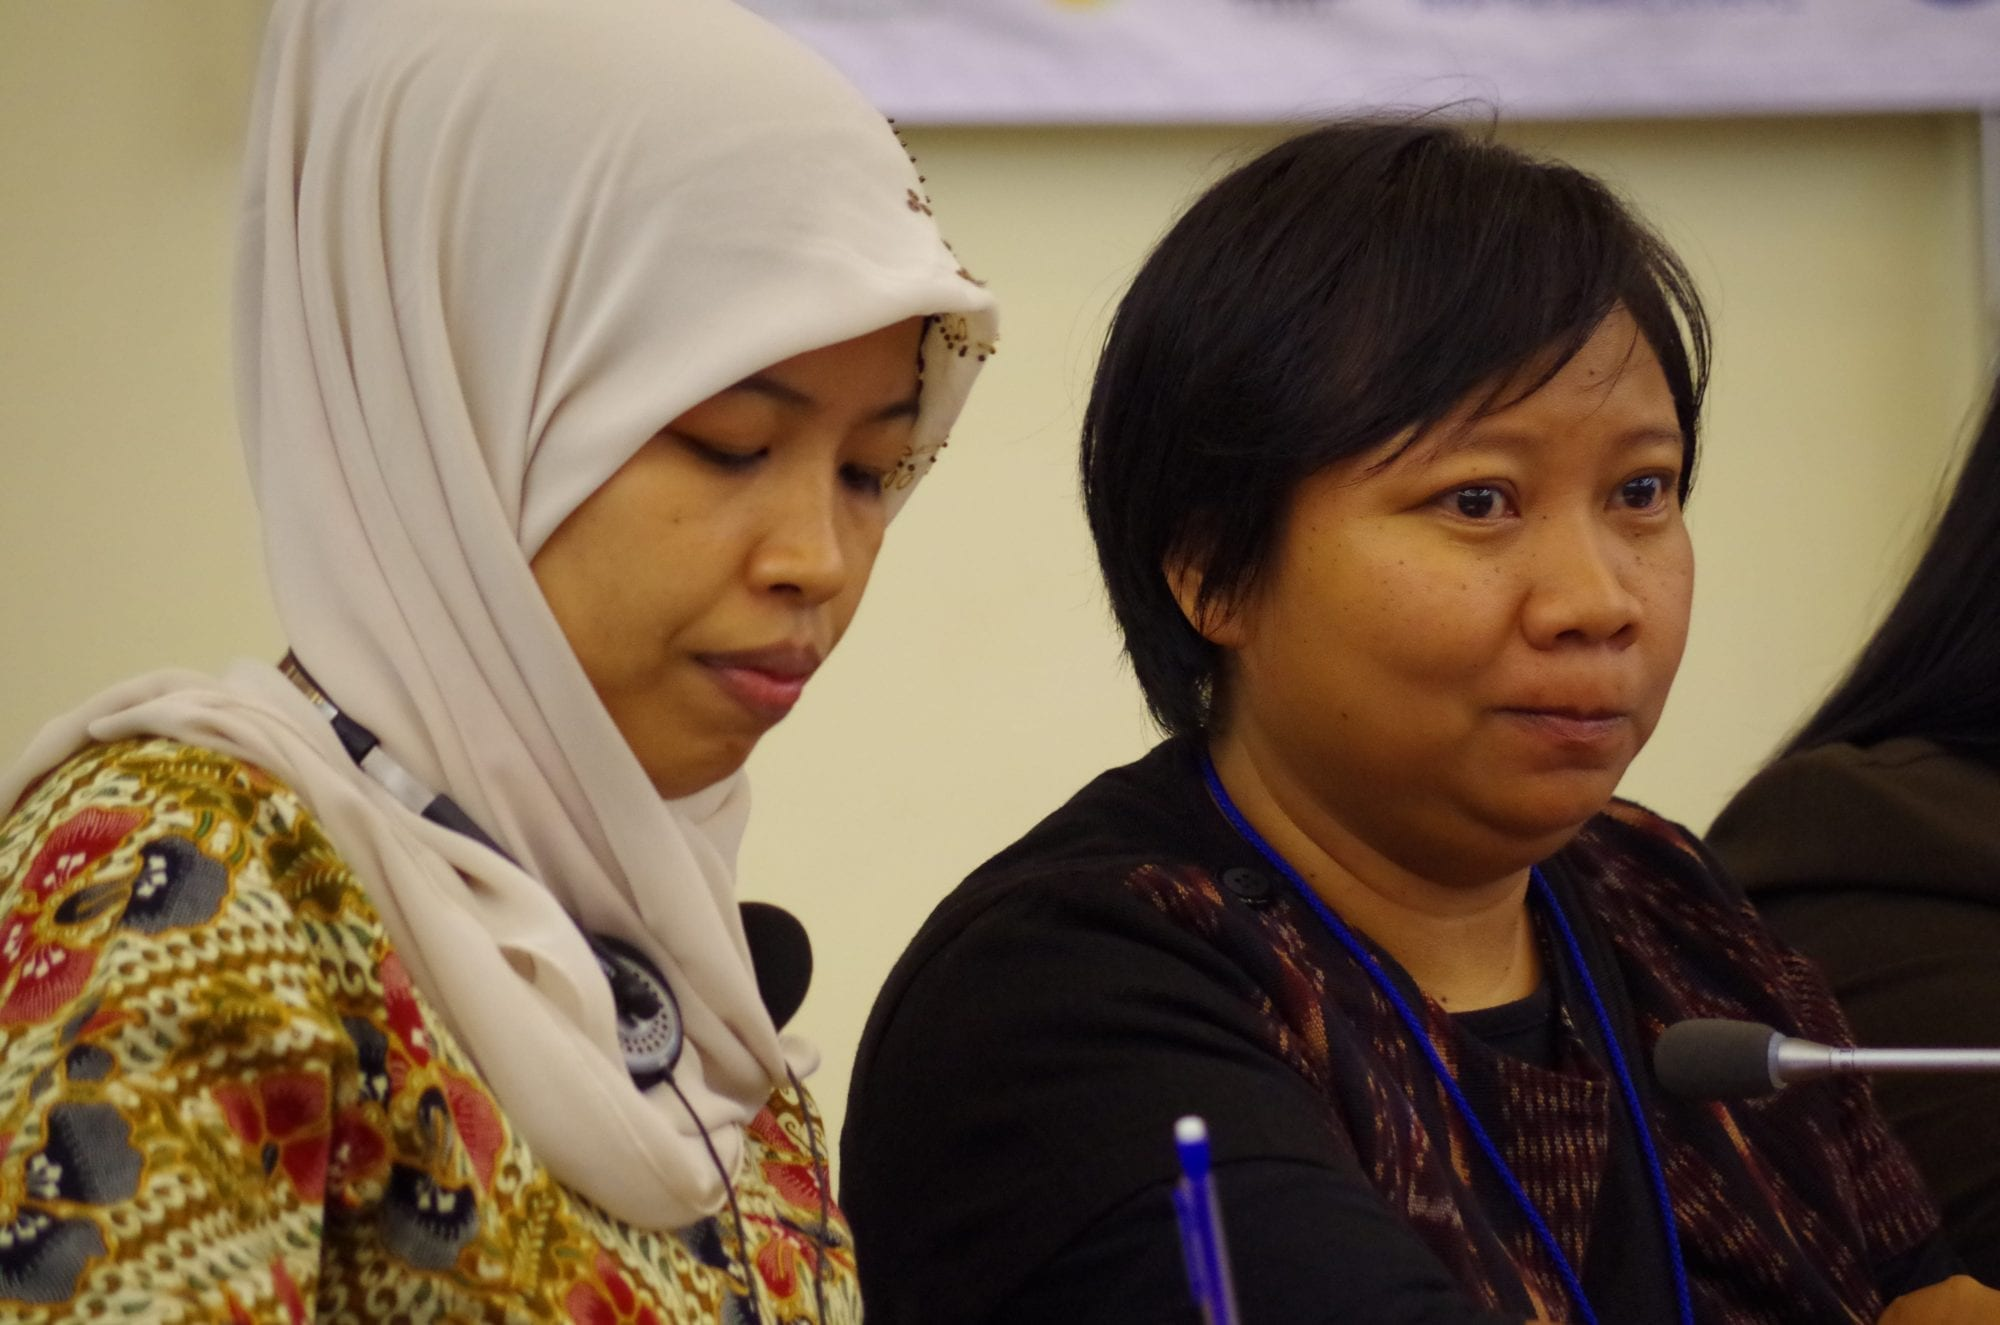 Indonesia, migration, human trafficking, Solidarity Center, migrants